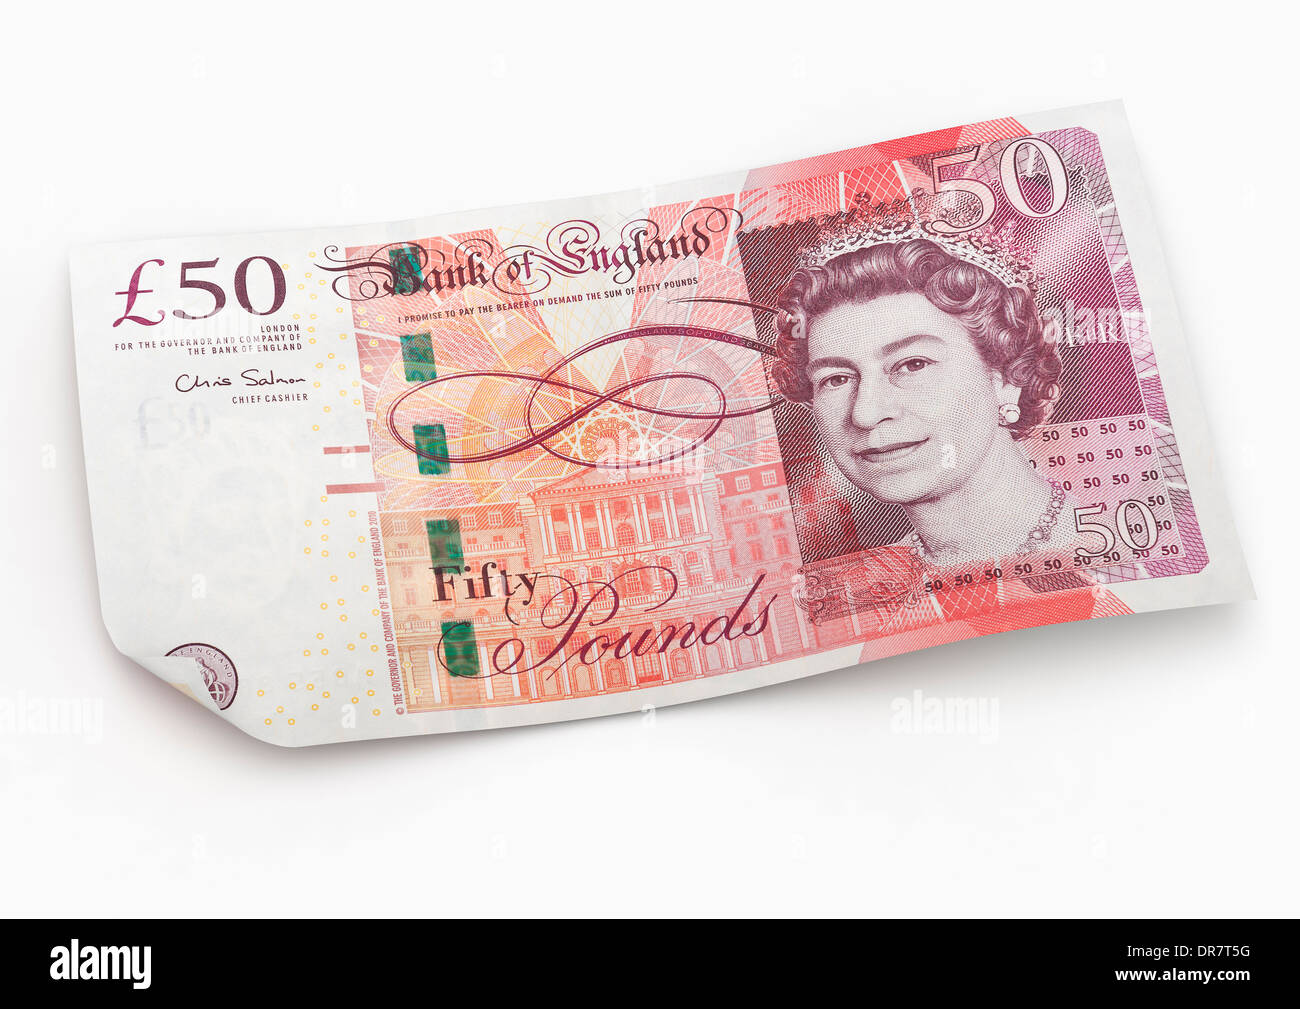 50 Pound Note Sterling British Currency on white background - Stock Image